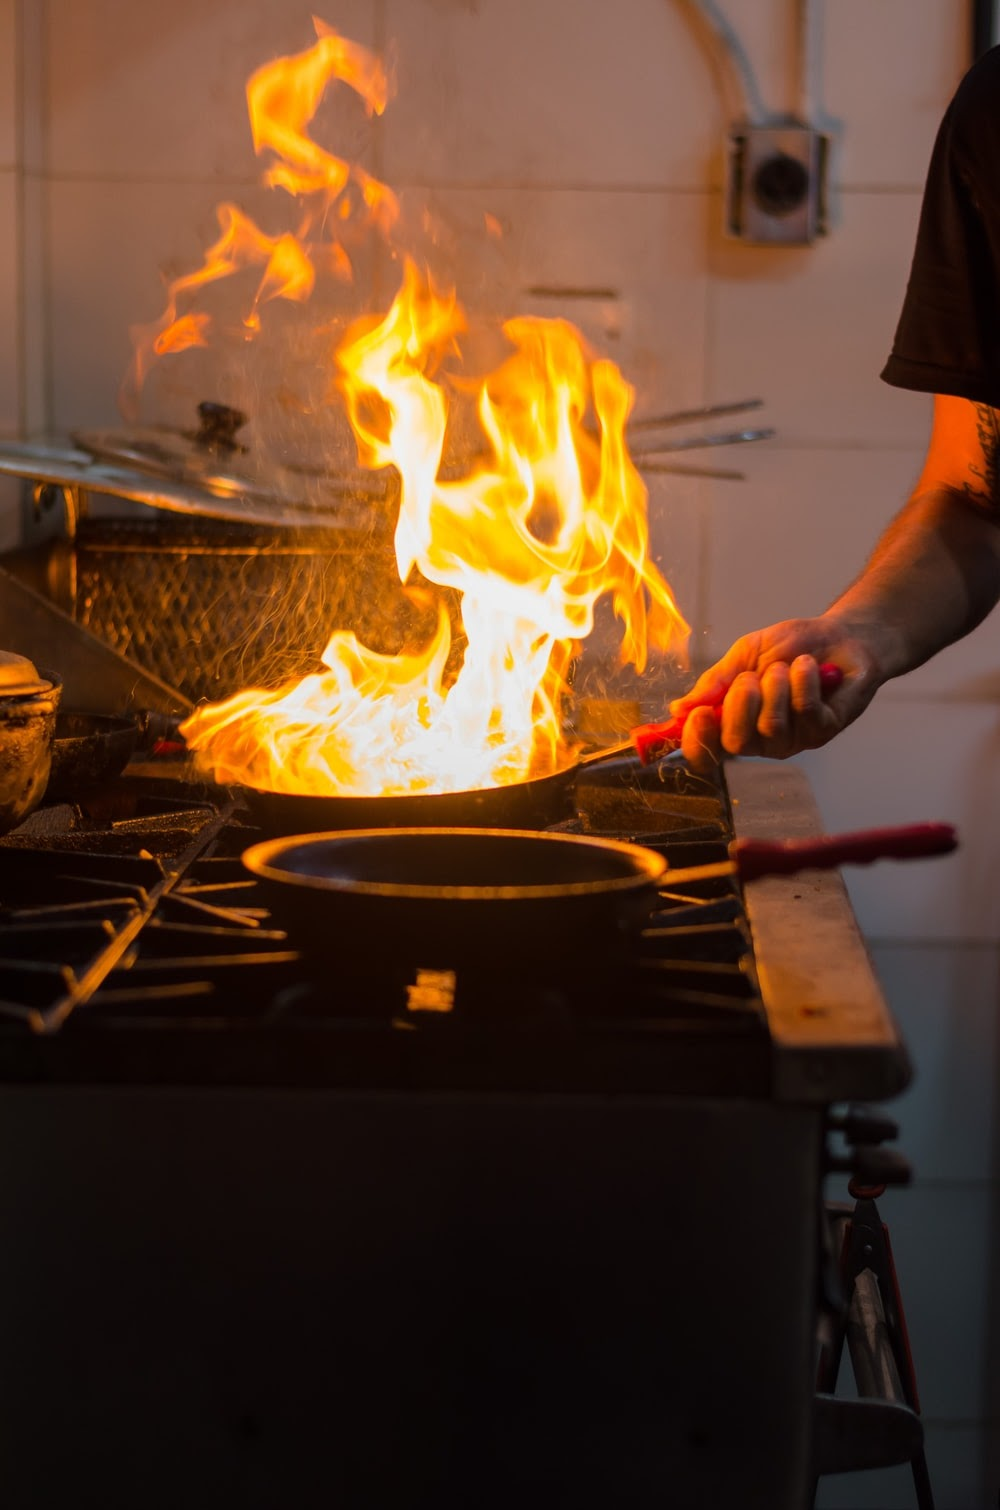 Flames Rising From A Pan On The Stove